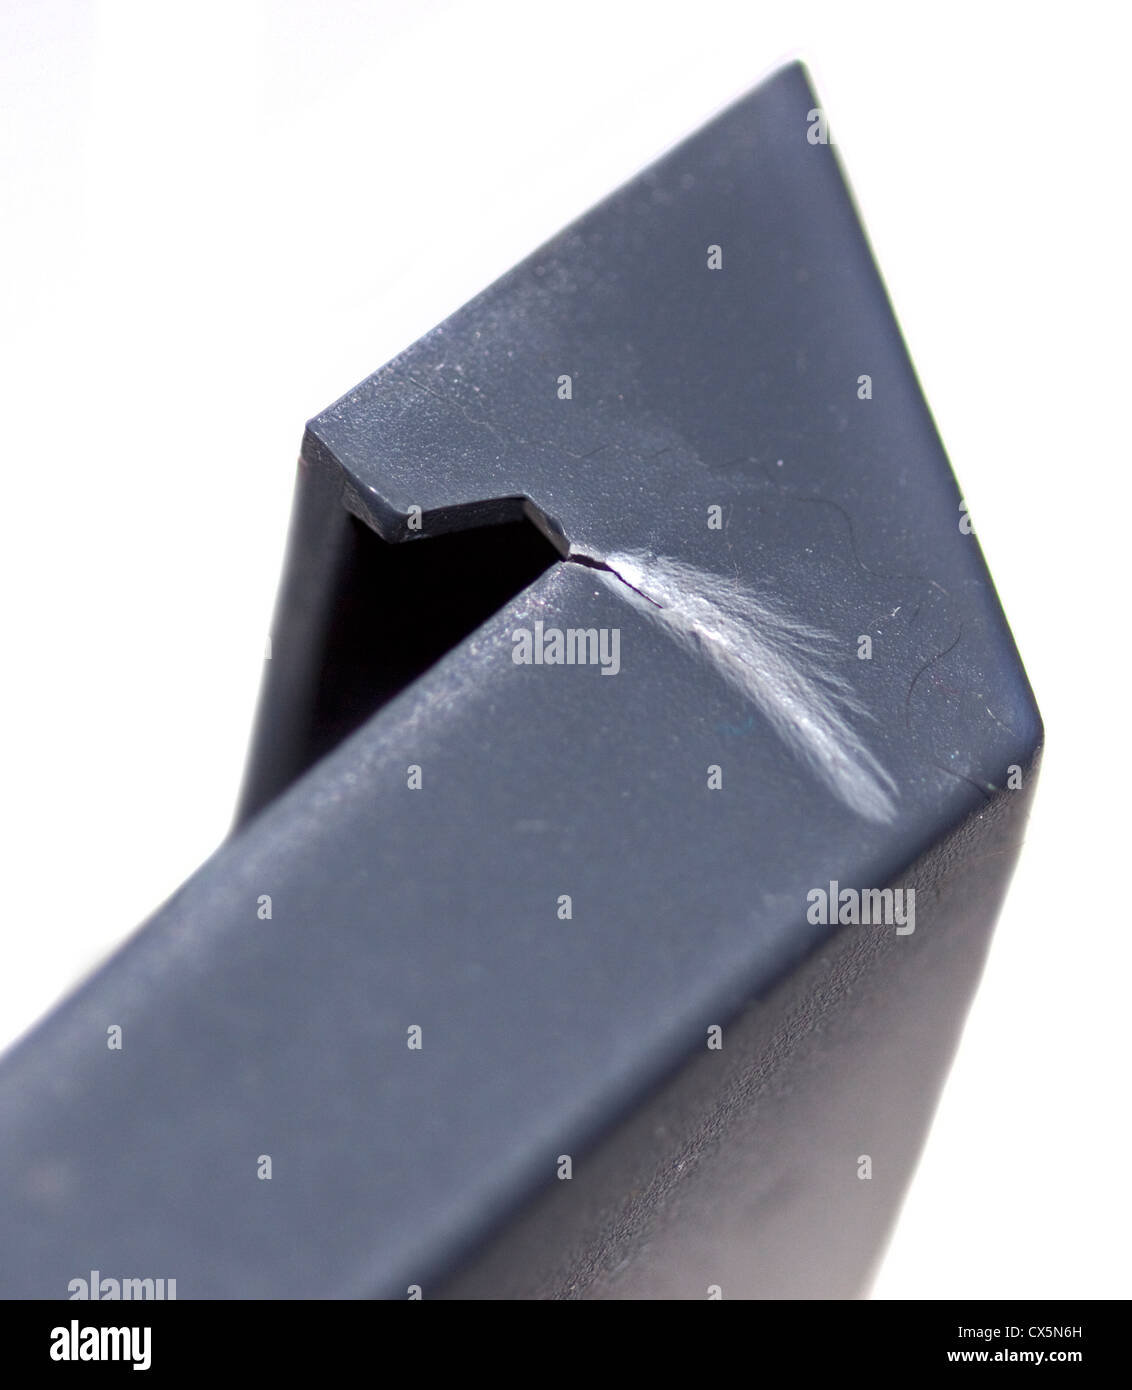 Plastic Hinge showing Stress Fracture - Stock Image